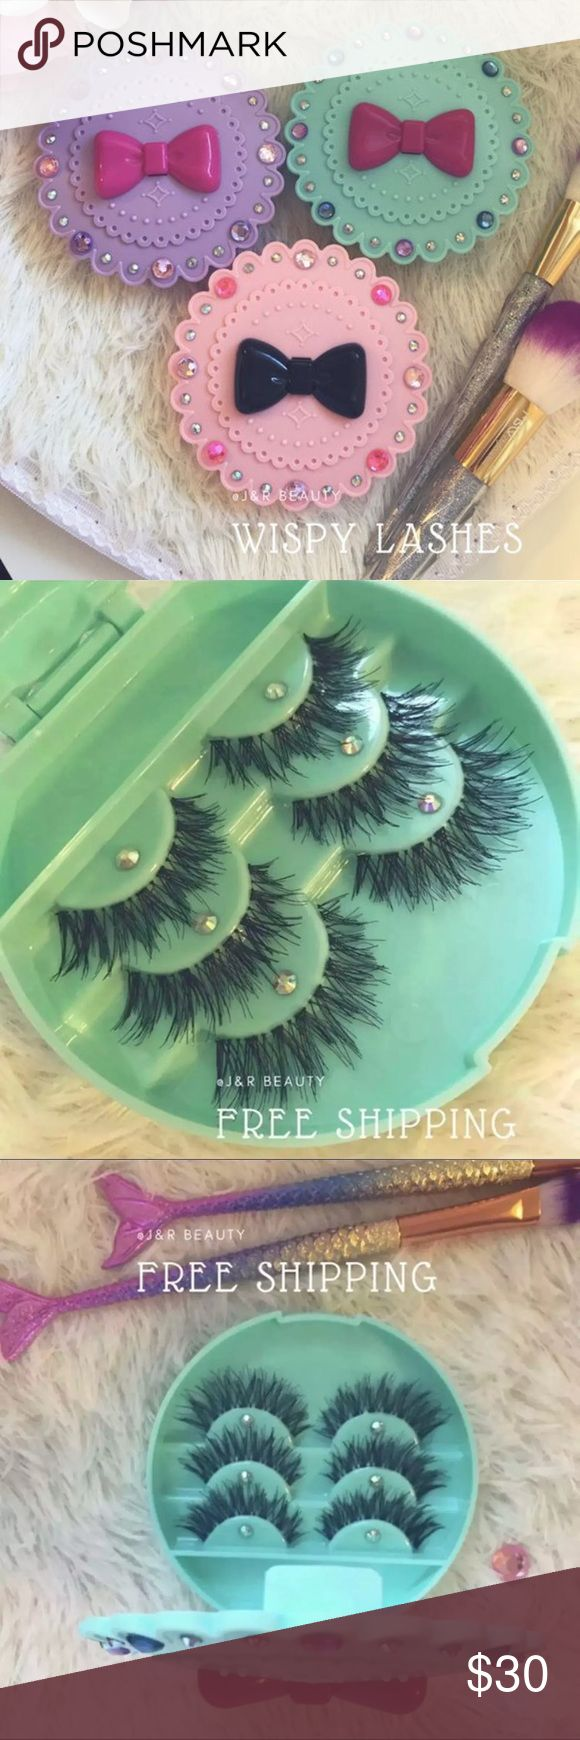 3 Eyelash Cases + 9 WSP Eyelashes All brand new include  ✅ 3 Eyelash Cases ( you can choose color ) ✅ 9 wispy Eyelashes   Great for a GIFT❤️✨ Each eyelash set wrapped separately with TLC❣️  Bundle deal⭐️  Usually $15 each⭐️ BUY 2 GET 1 FREE deal ⭐️  Add on eyelash applicator +$2 ❣️ Message me if you want to add them ✅ # tags Iconic, mink, red cherry eyelashes, house of lashes, doll, kawaii, case, full, natural, Demi , makeup, mascara, eyelash applicator, Mykonos Mink , Lashes , wispy…